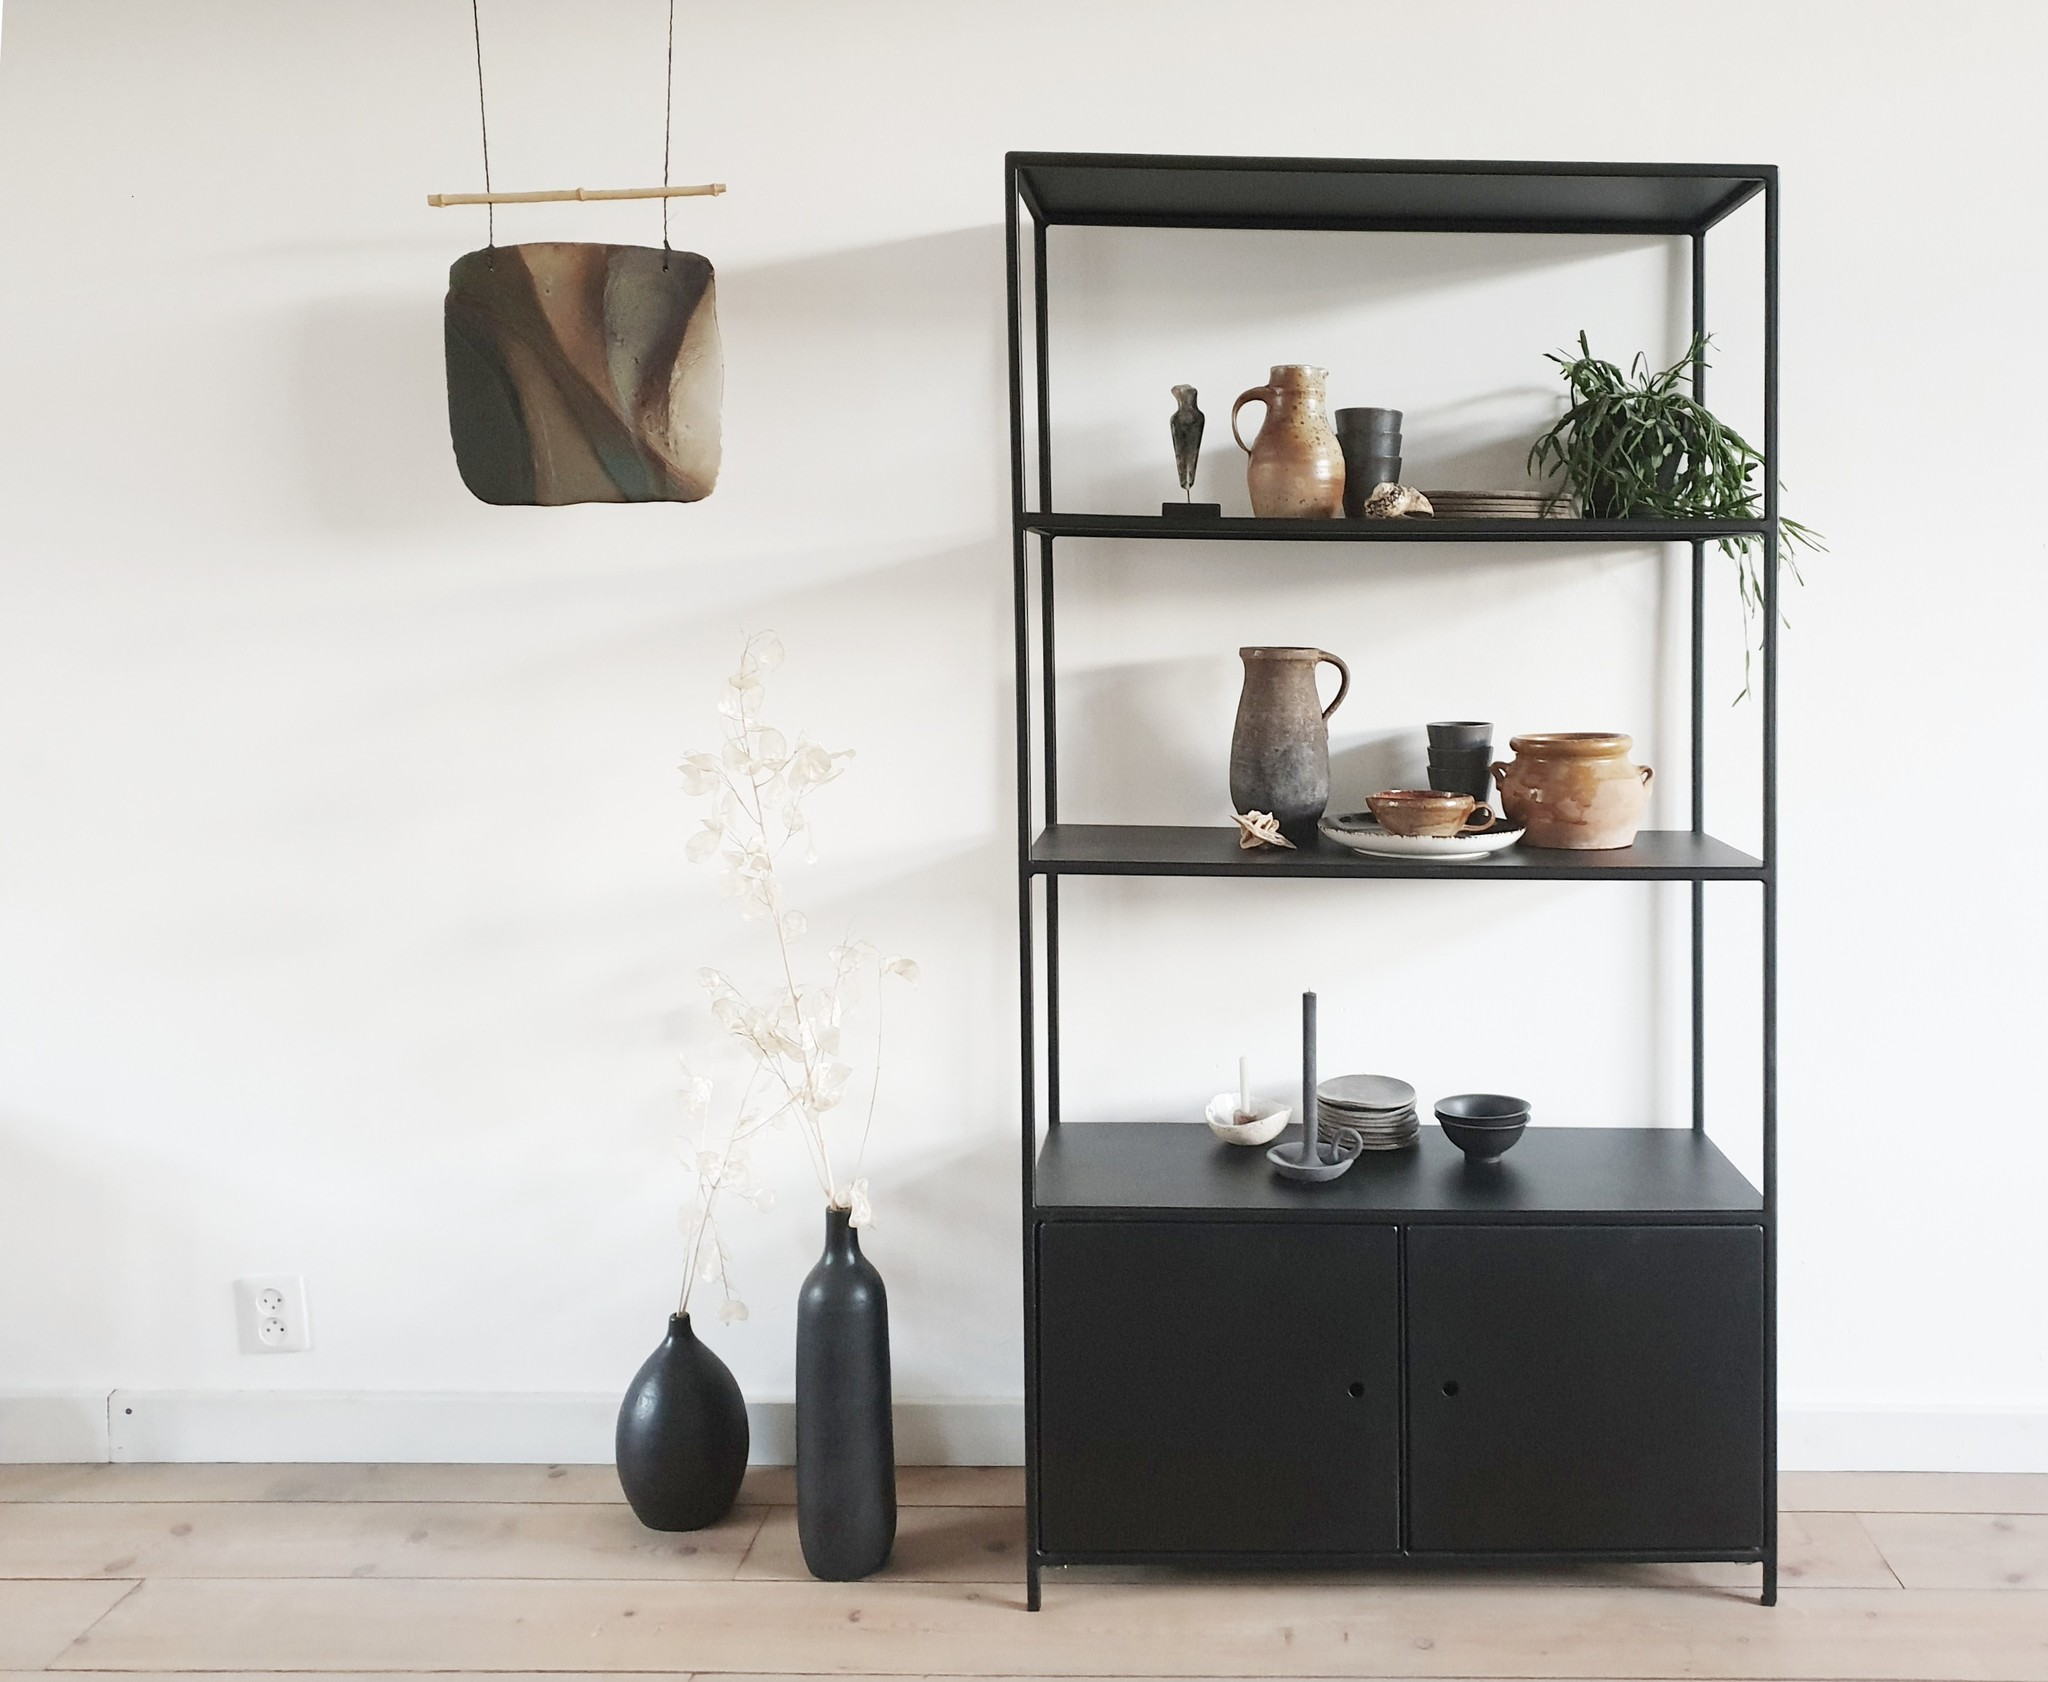 Stoer Metaal iron cabinet shelving unit Mannes, black